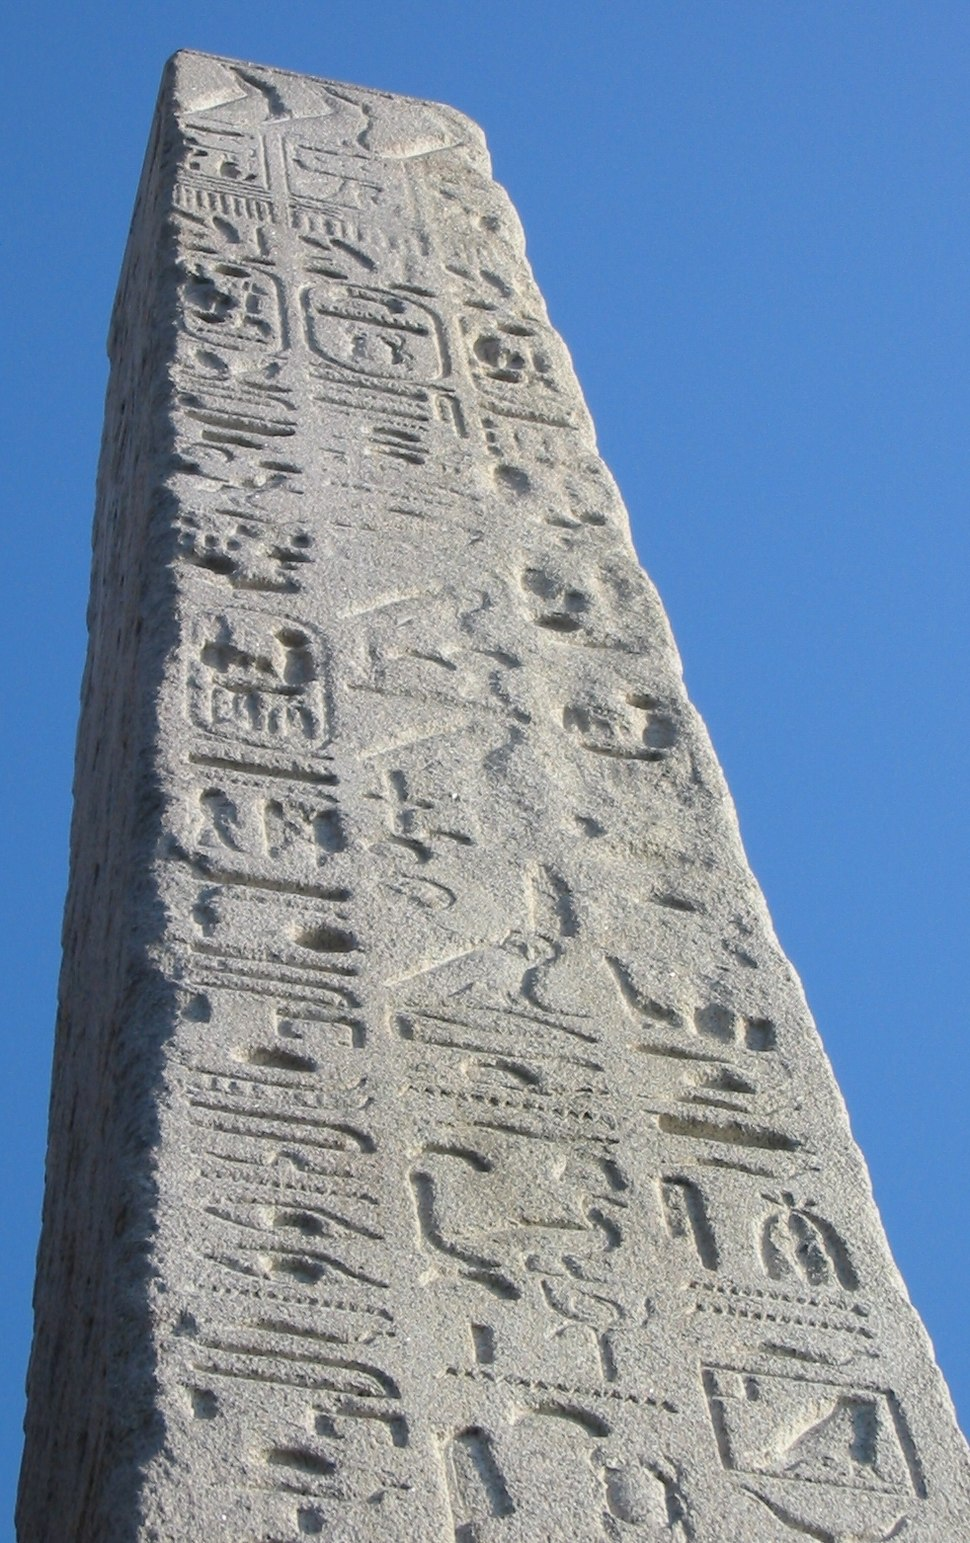 Cleopatra's Needle (London) inscriptions